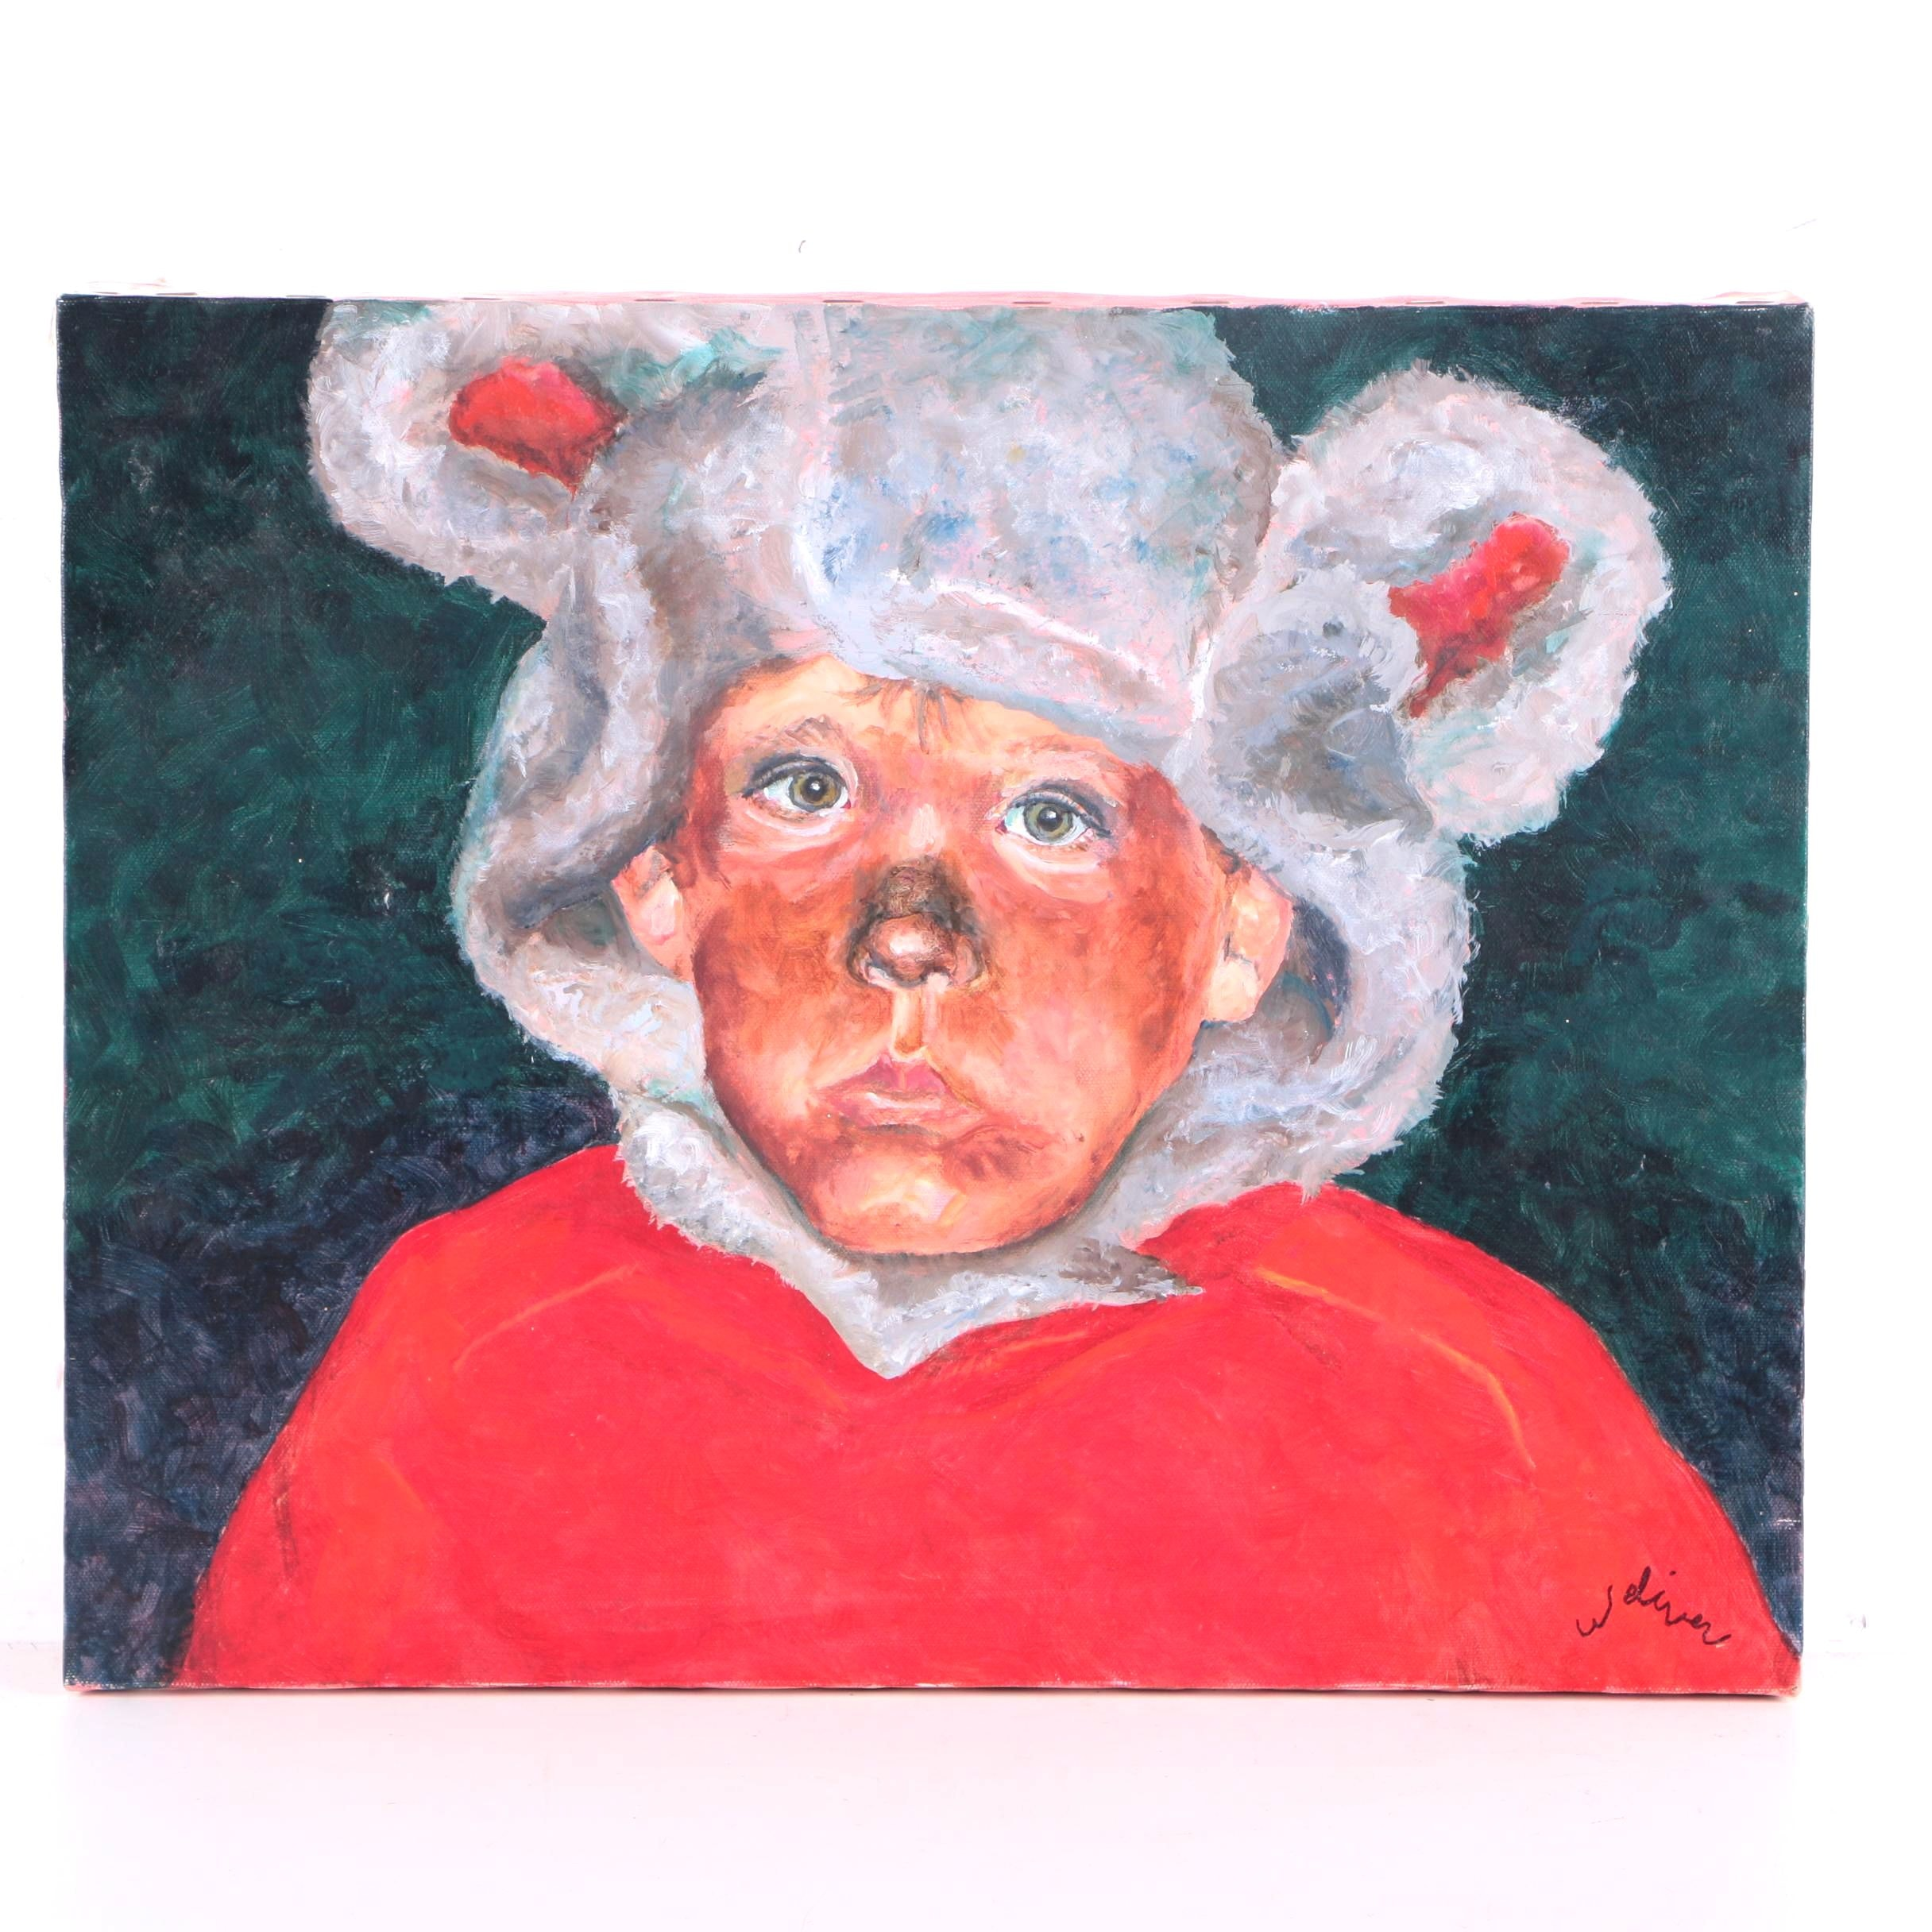 Weliver Oil Painting on Canvas of Boy in Bear Costume and Red Shirt